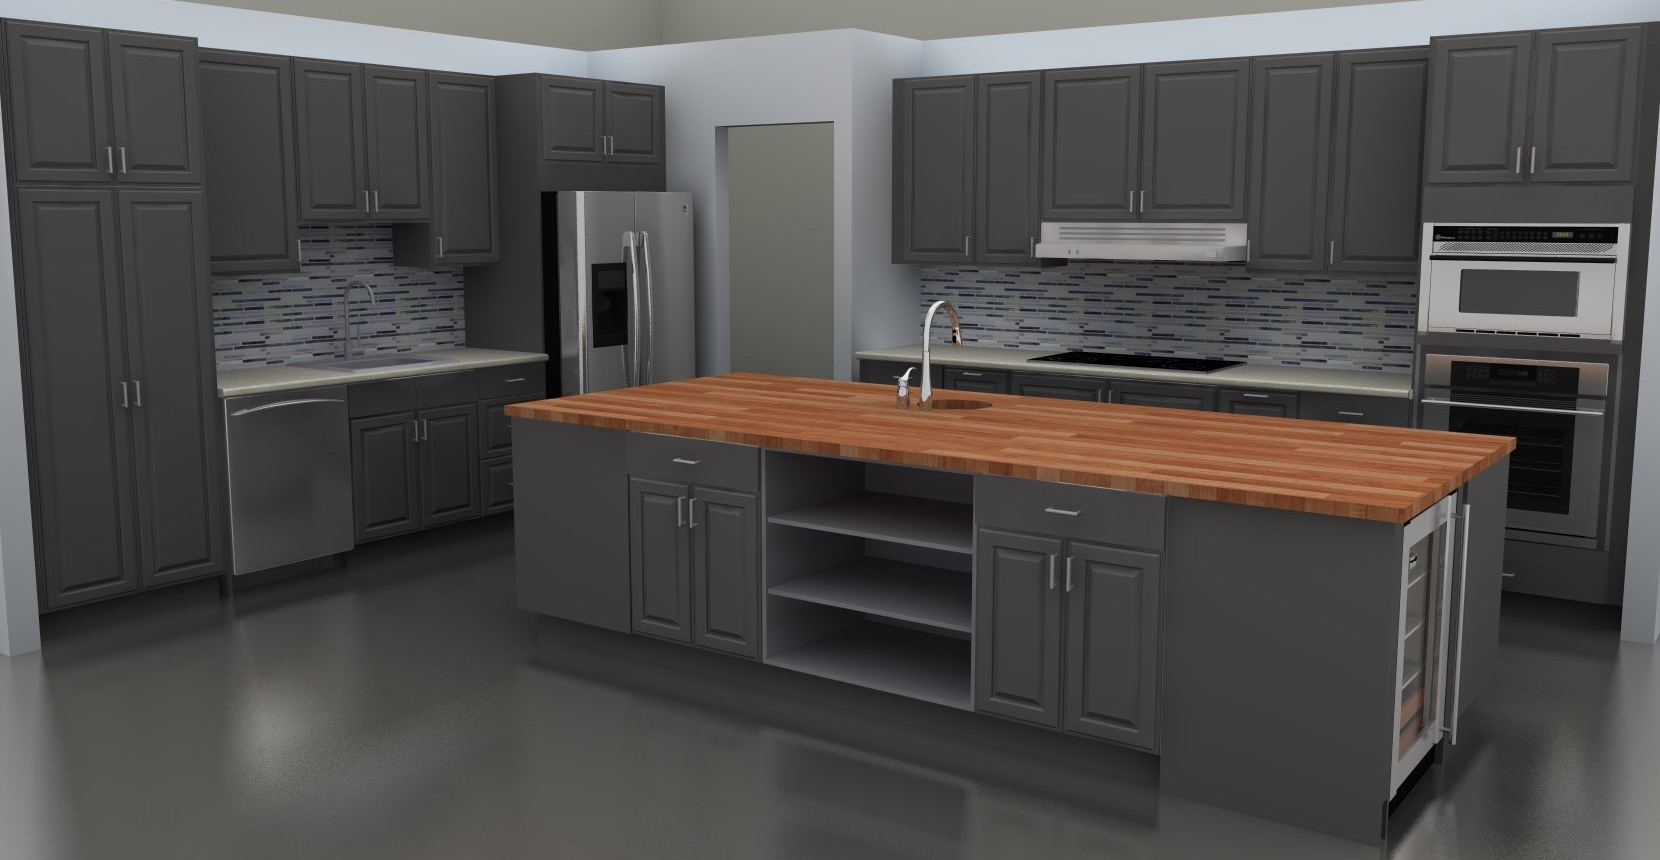 Stylish LIDINGO Gray Doors For A New IKEA Kitchen - Grey colored kitchens